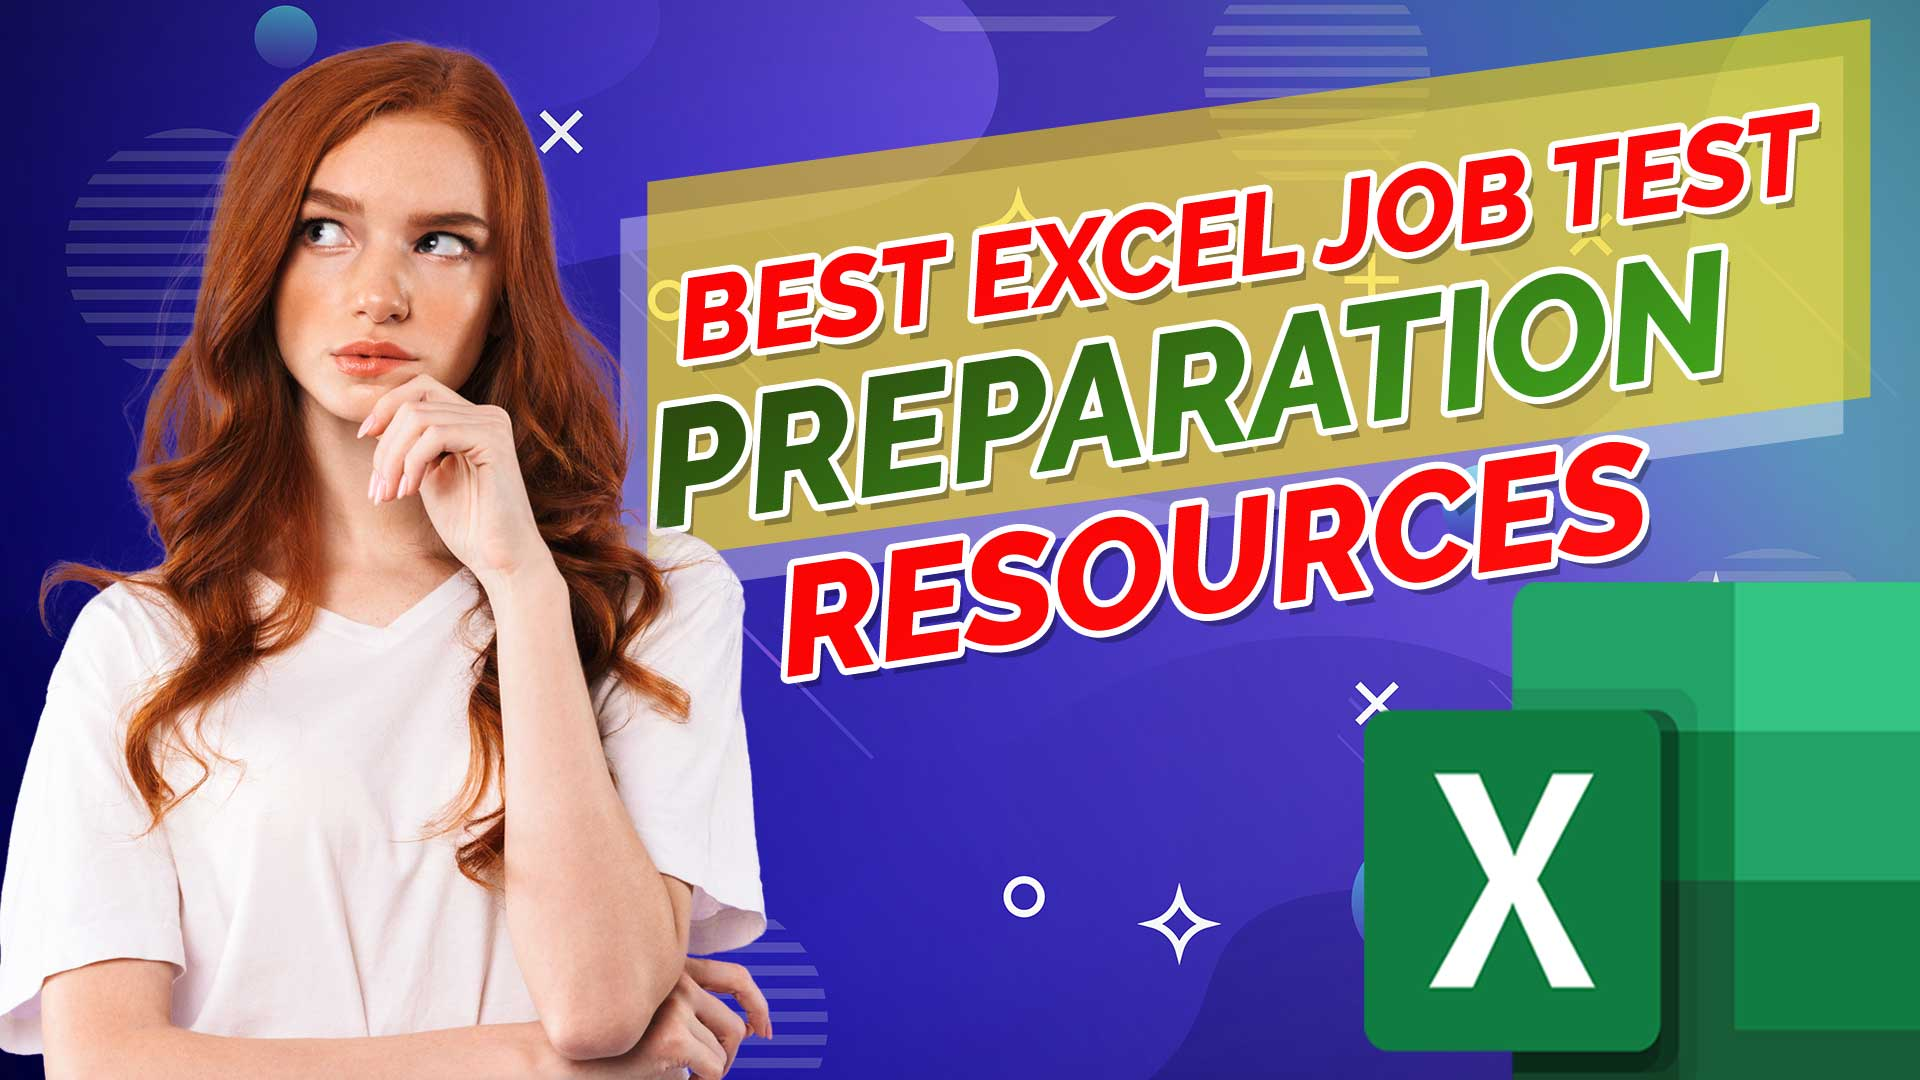 Best-Excel-Test-Preparation-Resources